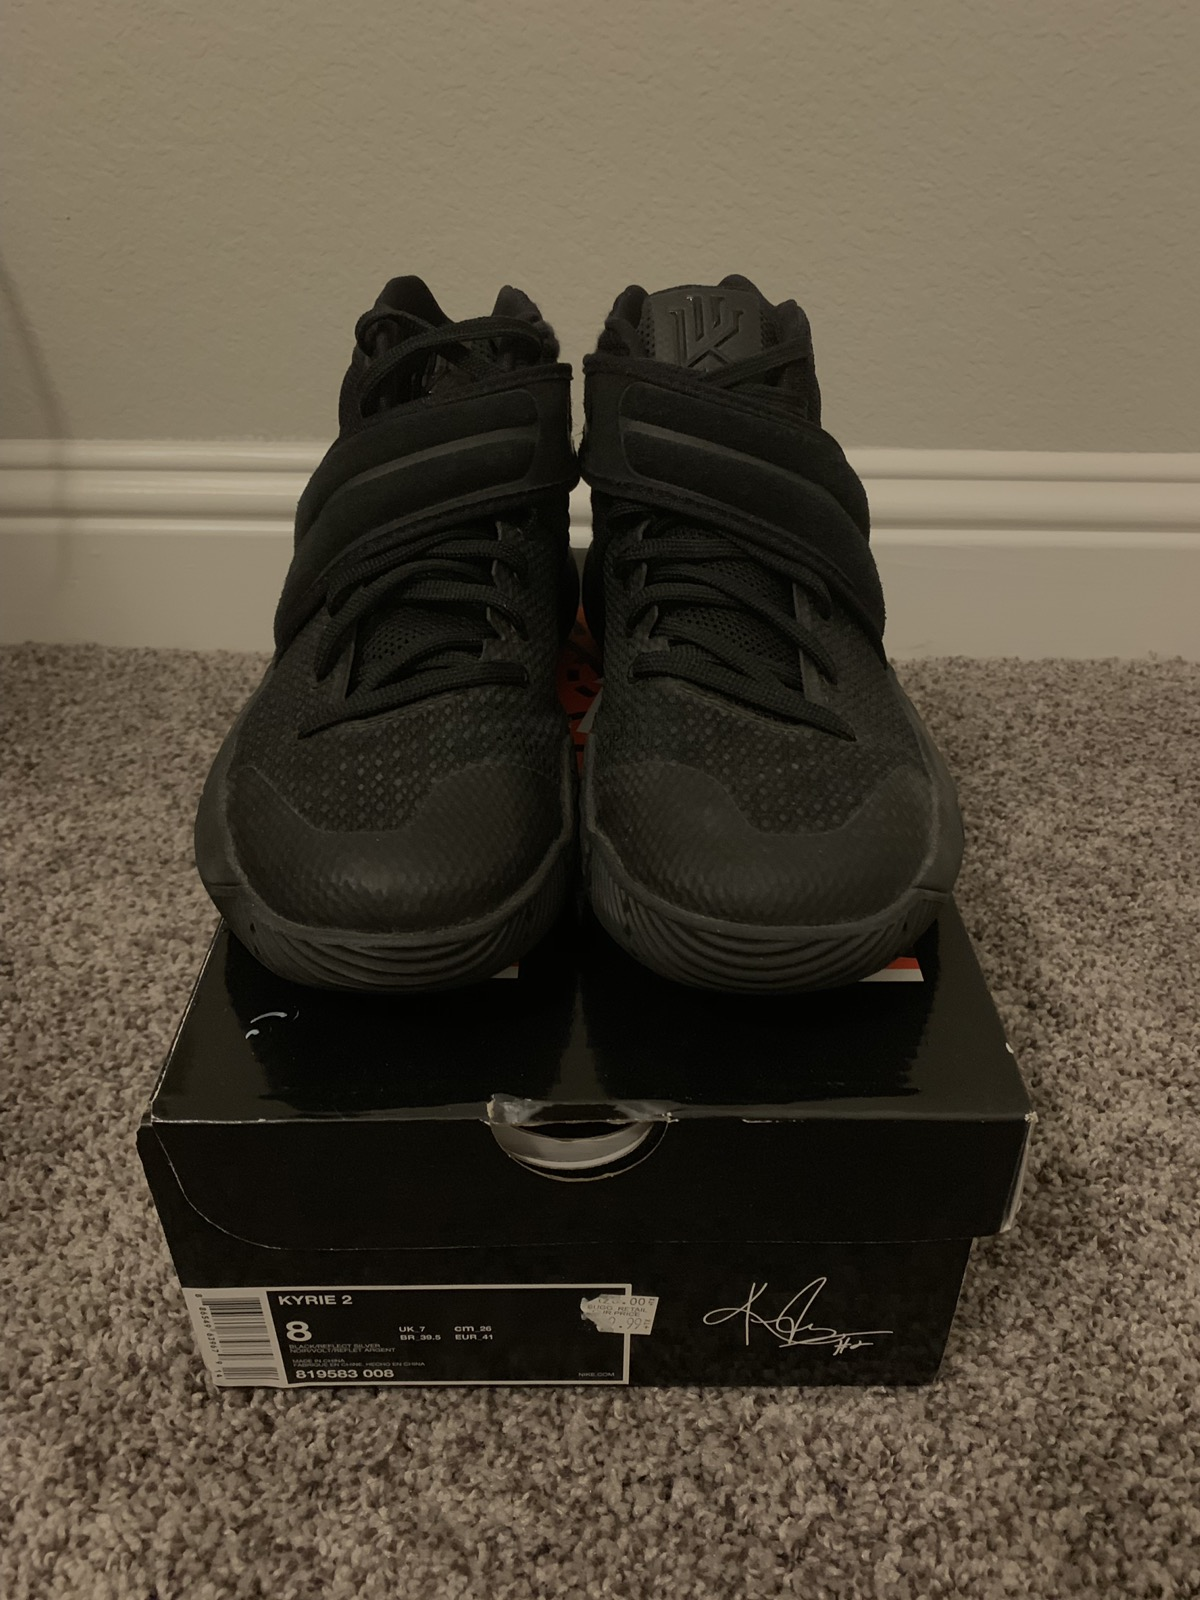 """Nike Kyrie 2 """"Blackout"""" Size 8 - Hi-Top Sneakers for Sale - Grailed b4158612fb5"""